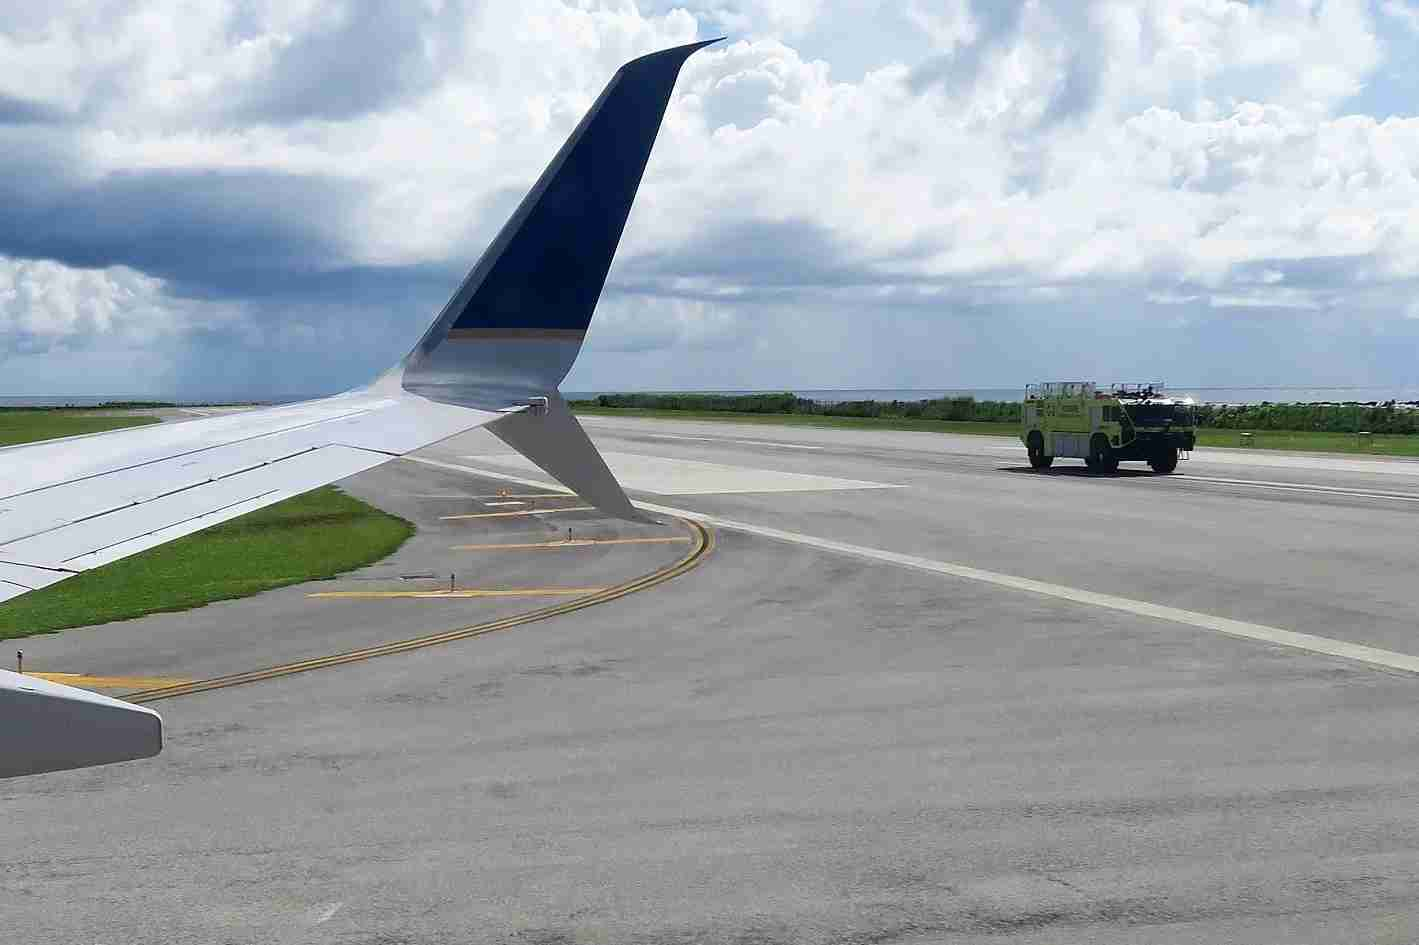 A fire truck by a United Airlines aircraft (Photo by JT Genter / The Points Guy)